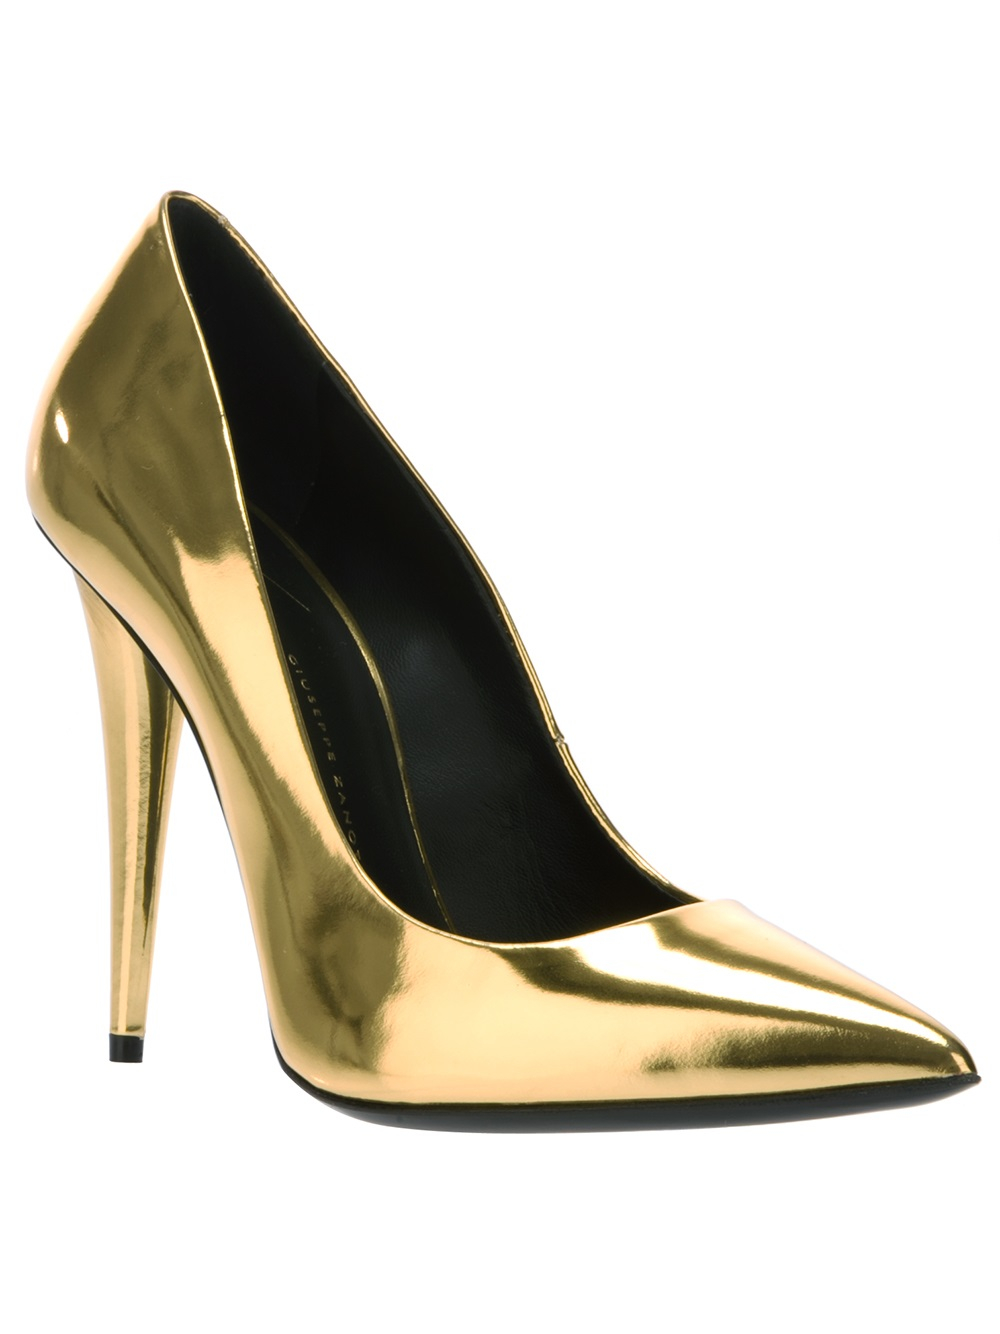 giuseppe zanotti metallic pointed pump in metallic lyst. Black Bedroom Furniture Sets. Home Design Ideas